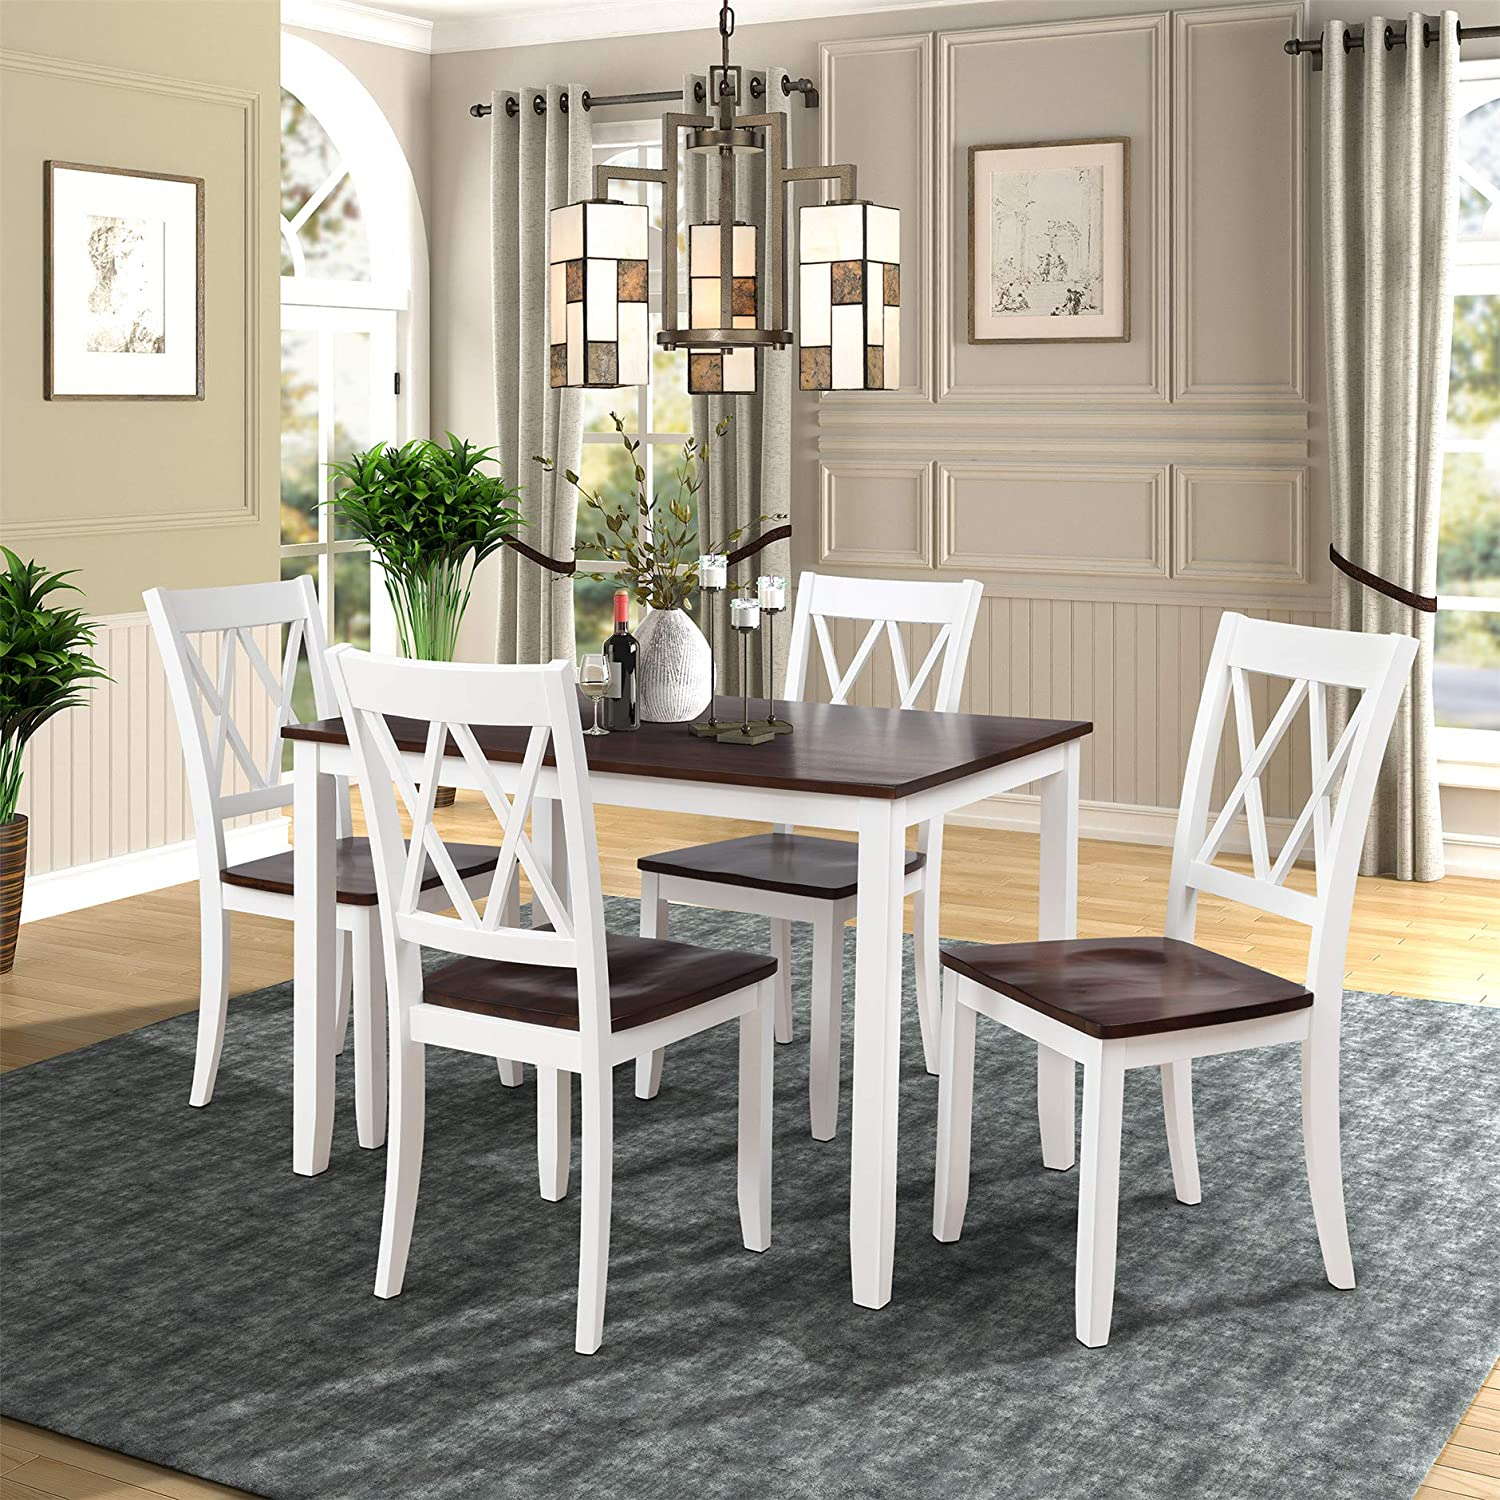 All stores are sold Houston Mall Harper Bright Designs Dining Set Kitchen Table 5-Piece